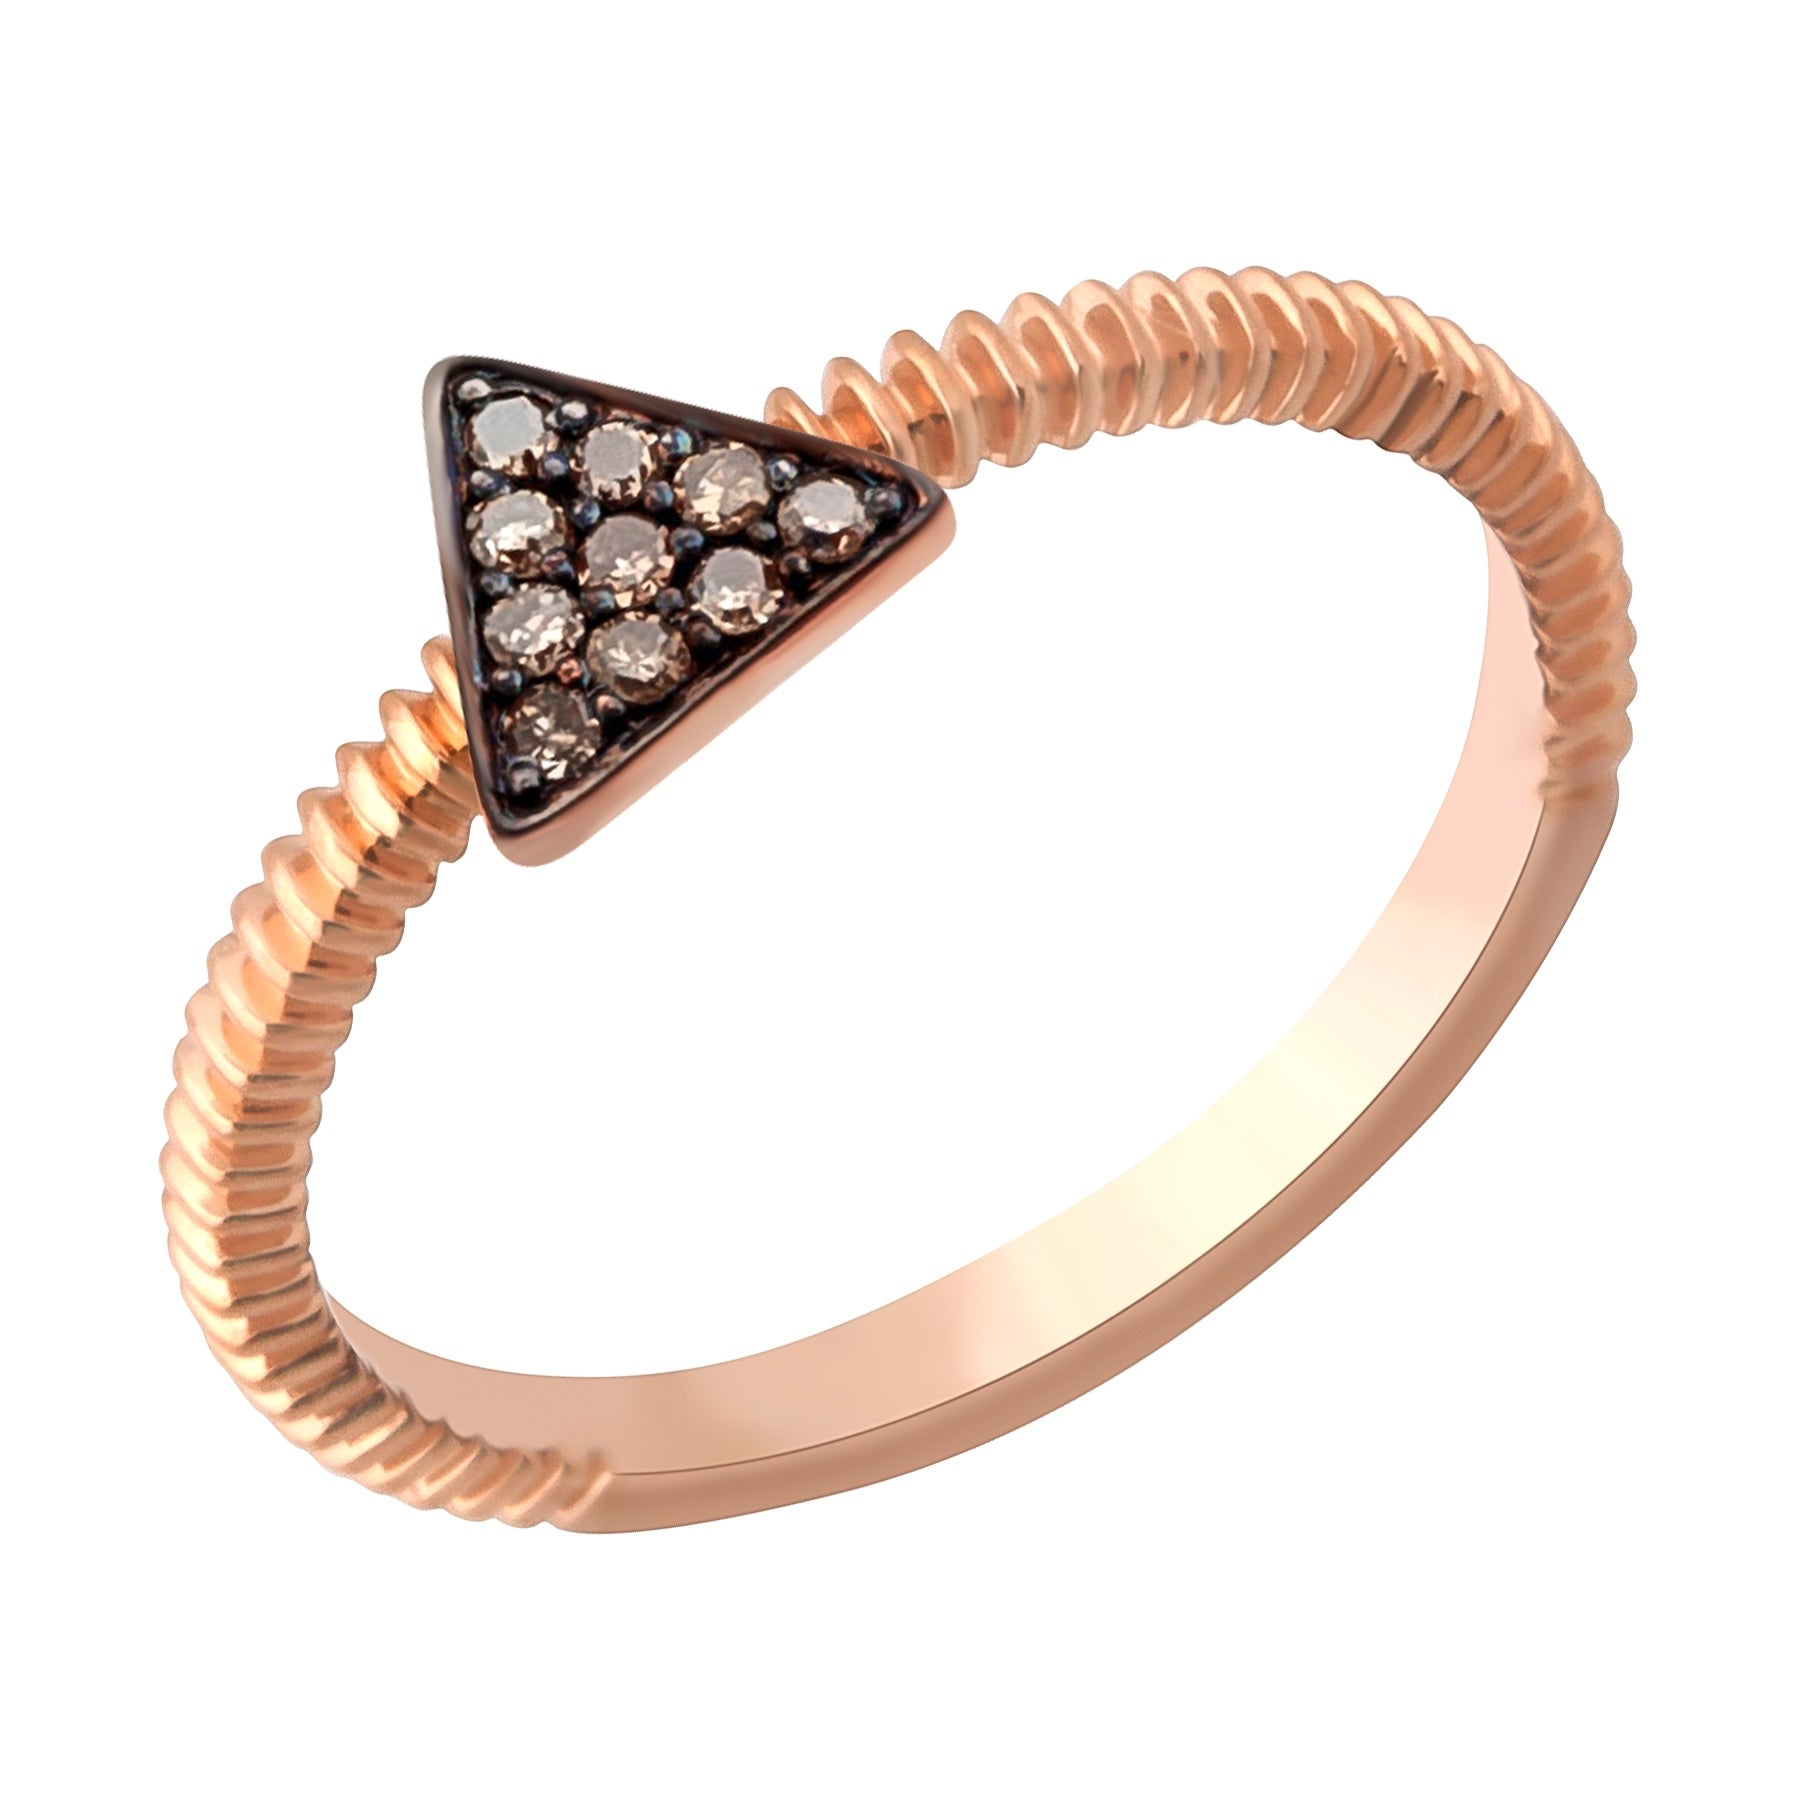 Prism Jewel 0.07Ct Round Brown Diamond Triangle Shaped Fancy Ring - Thumbnail 0